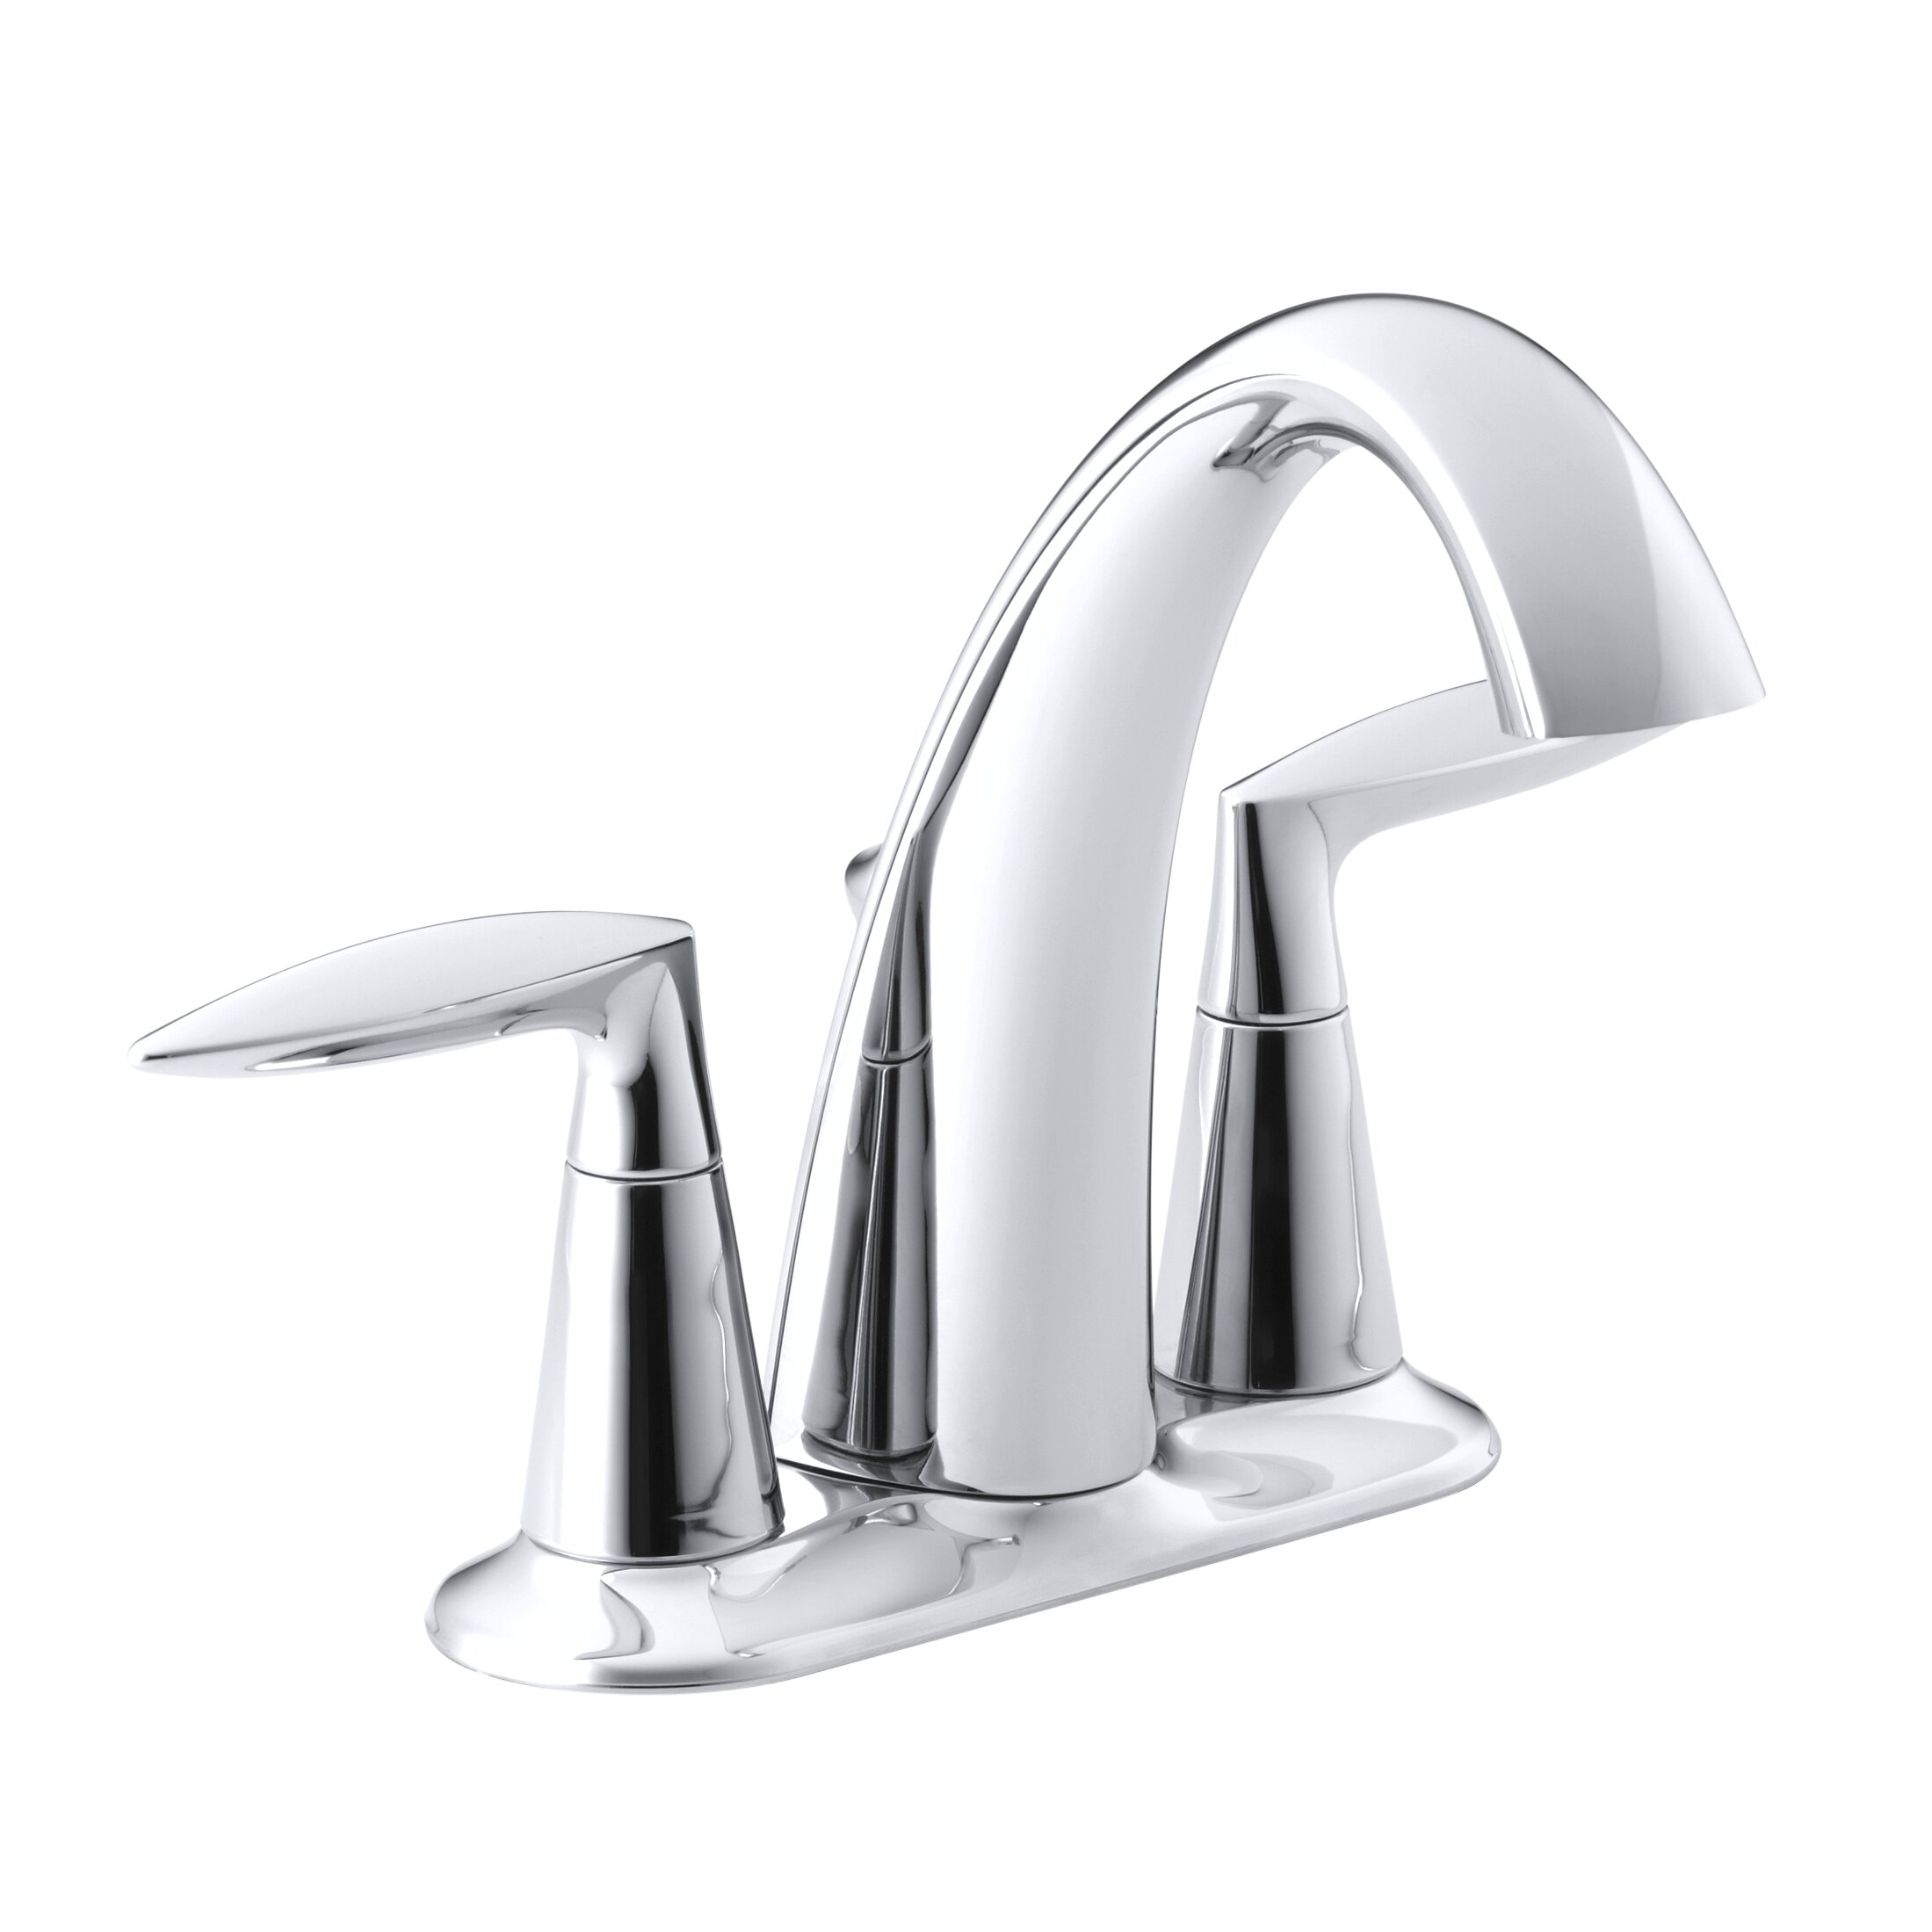 Kohler Faucet Reviews : Kohler Alteo Centerset Bathroom Sink Faucet & Reviews Wayfair